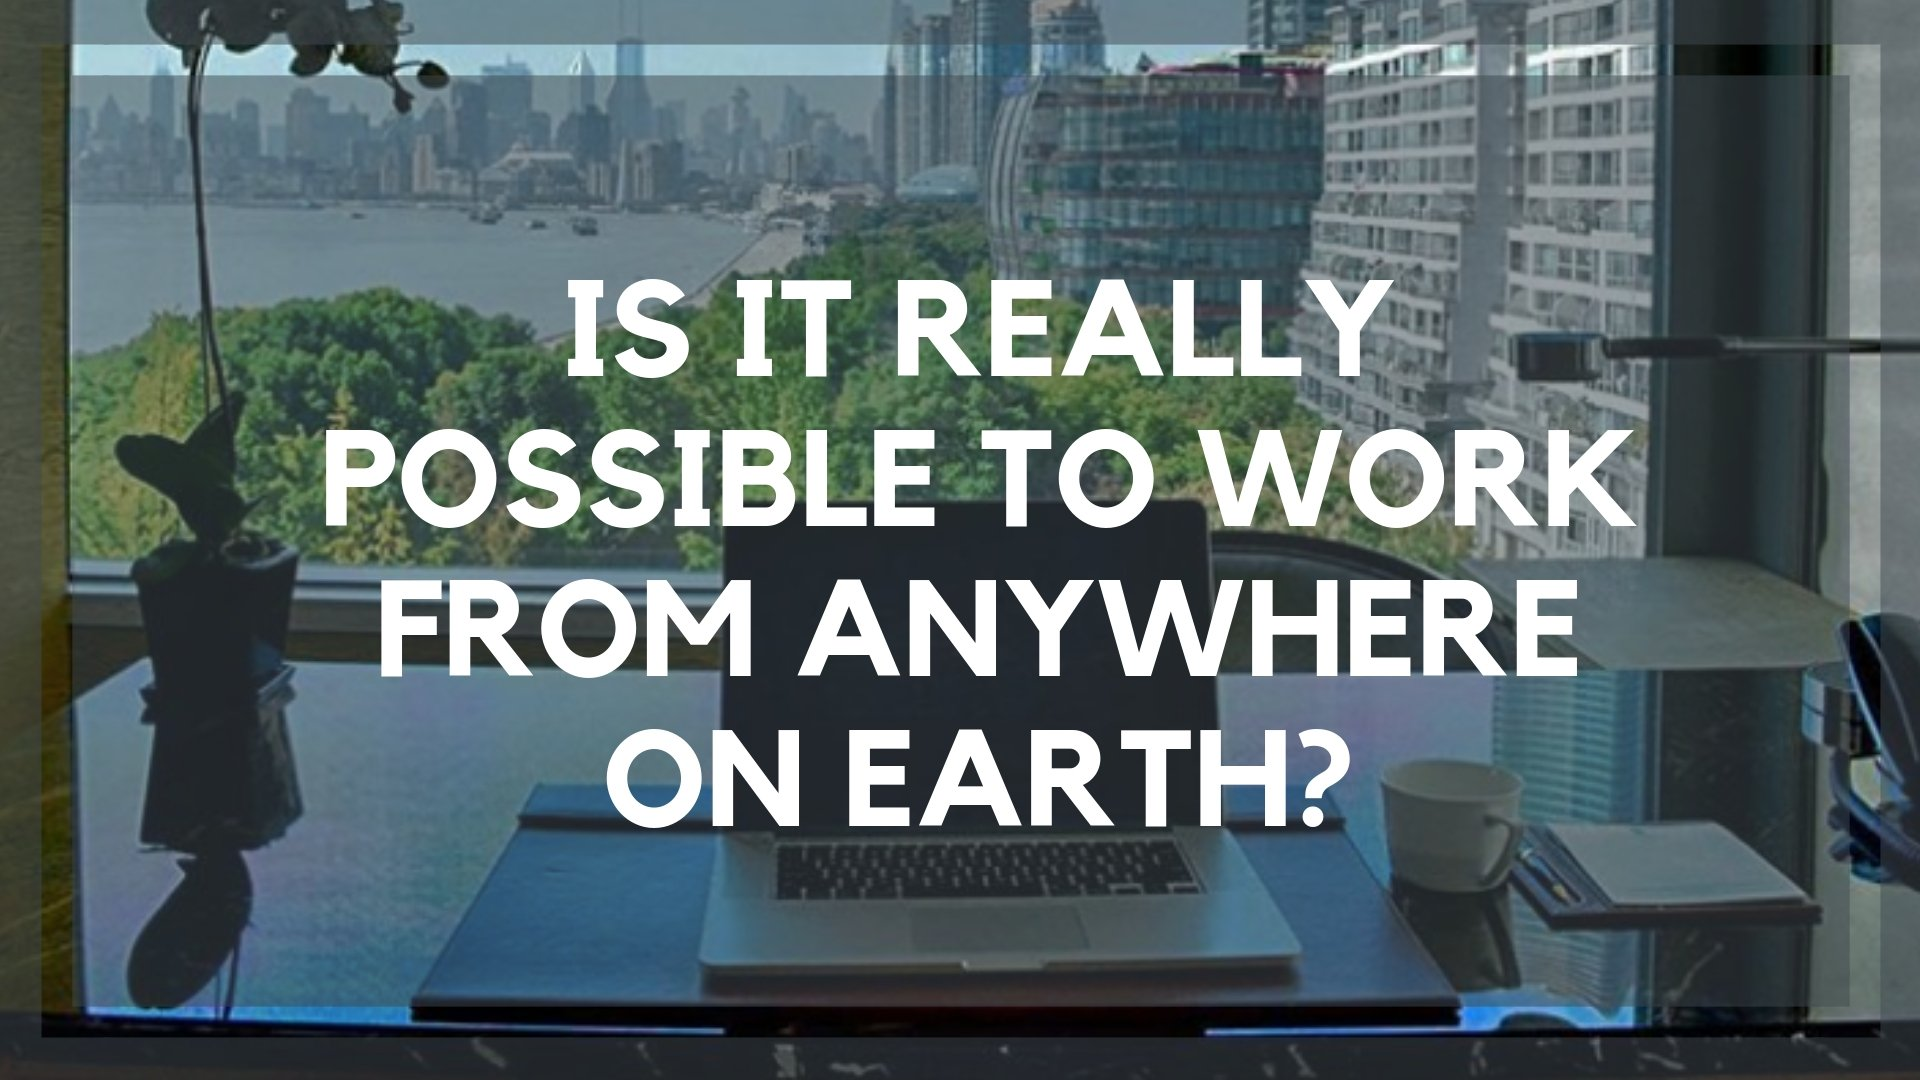 Is It Really Possible to Work from Anywhere On Earth?